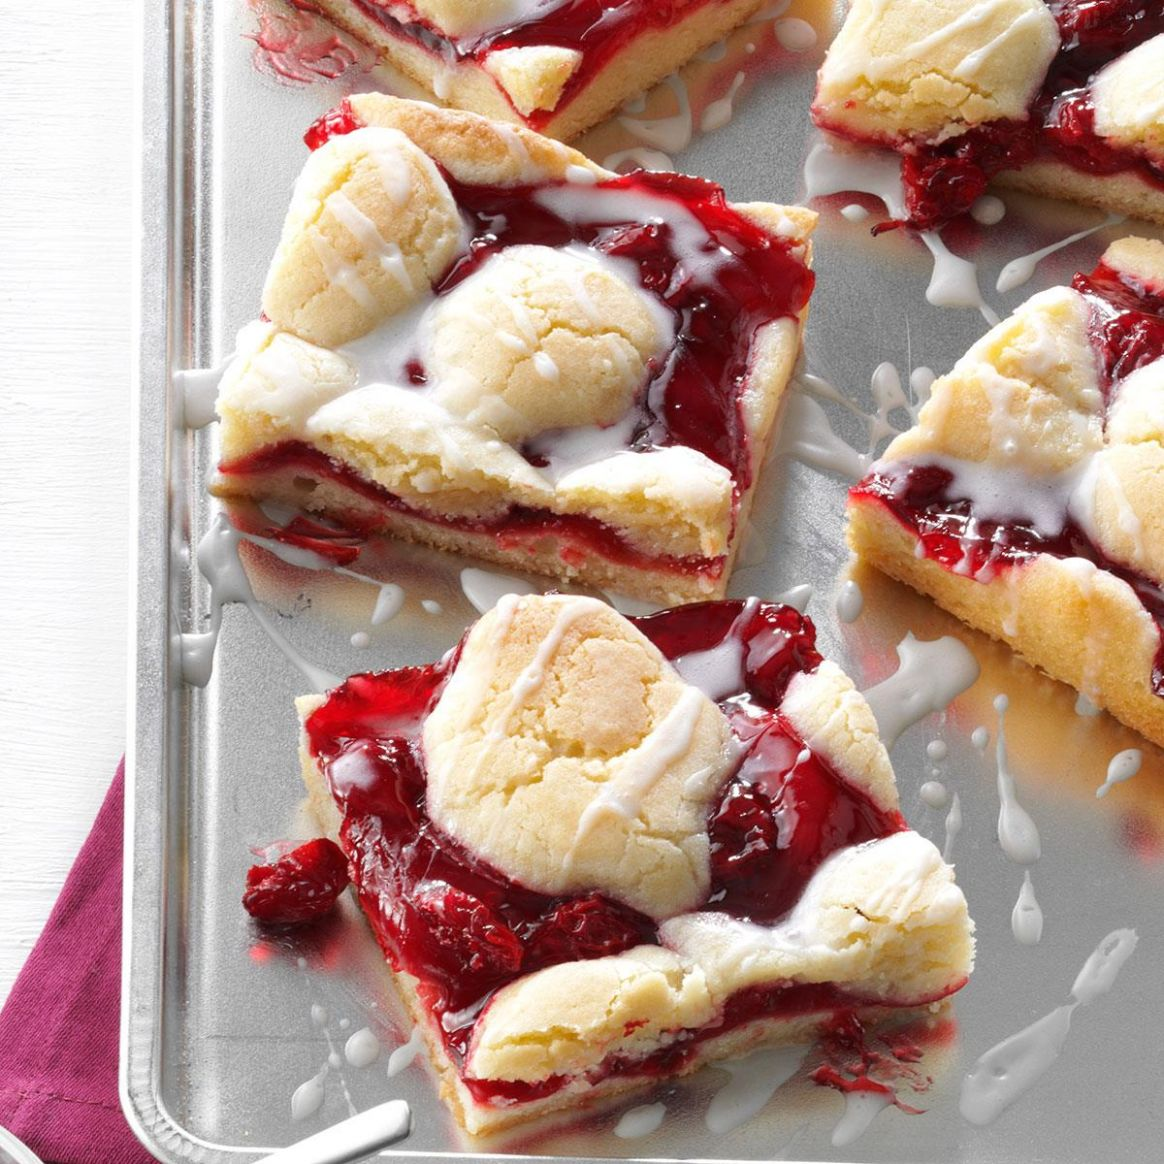 Cherry Bars - Dessert Recipes Made With Cherry Pie Filling